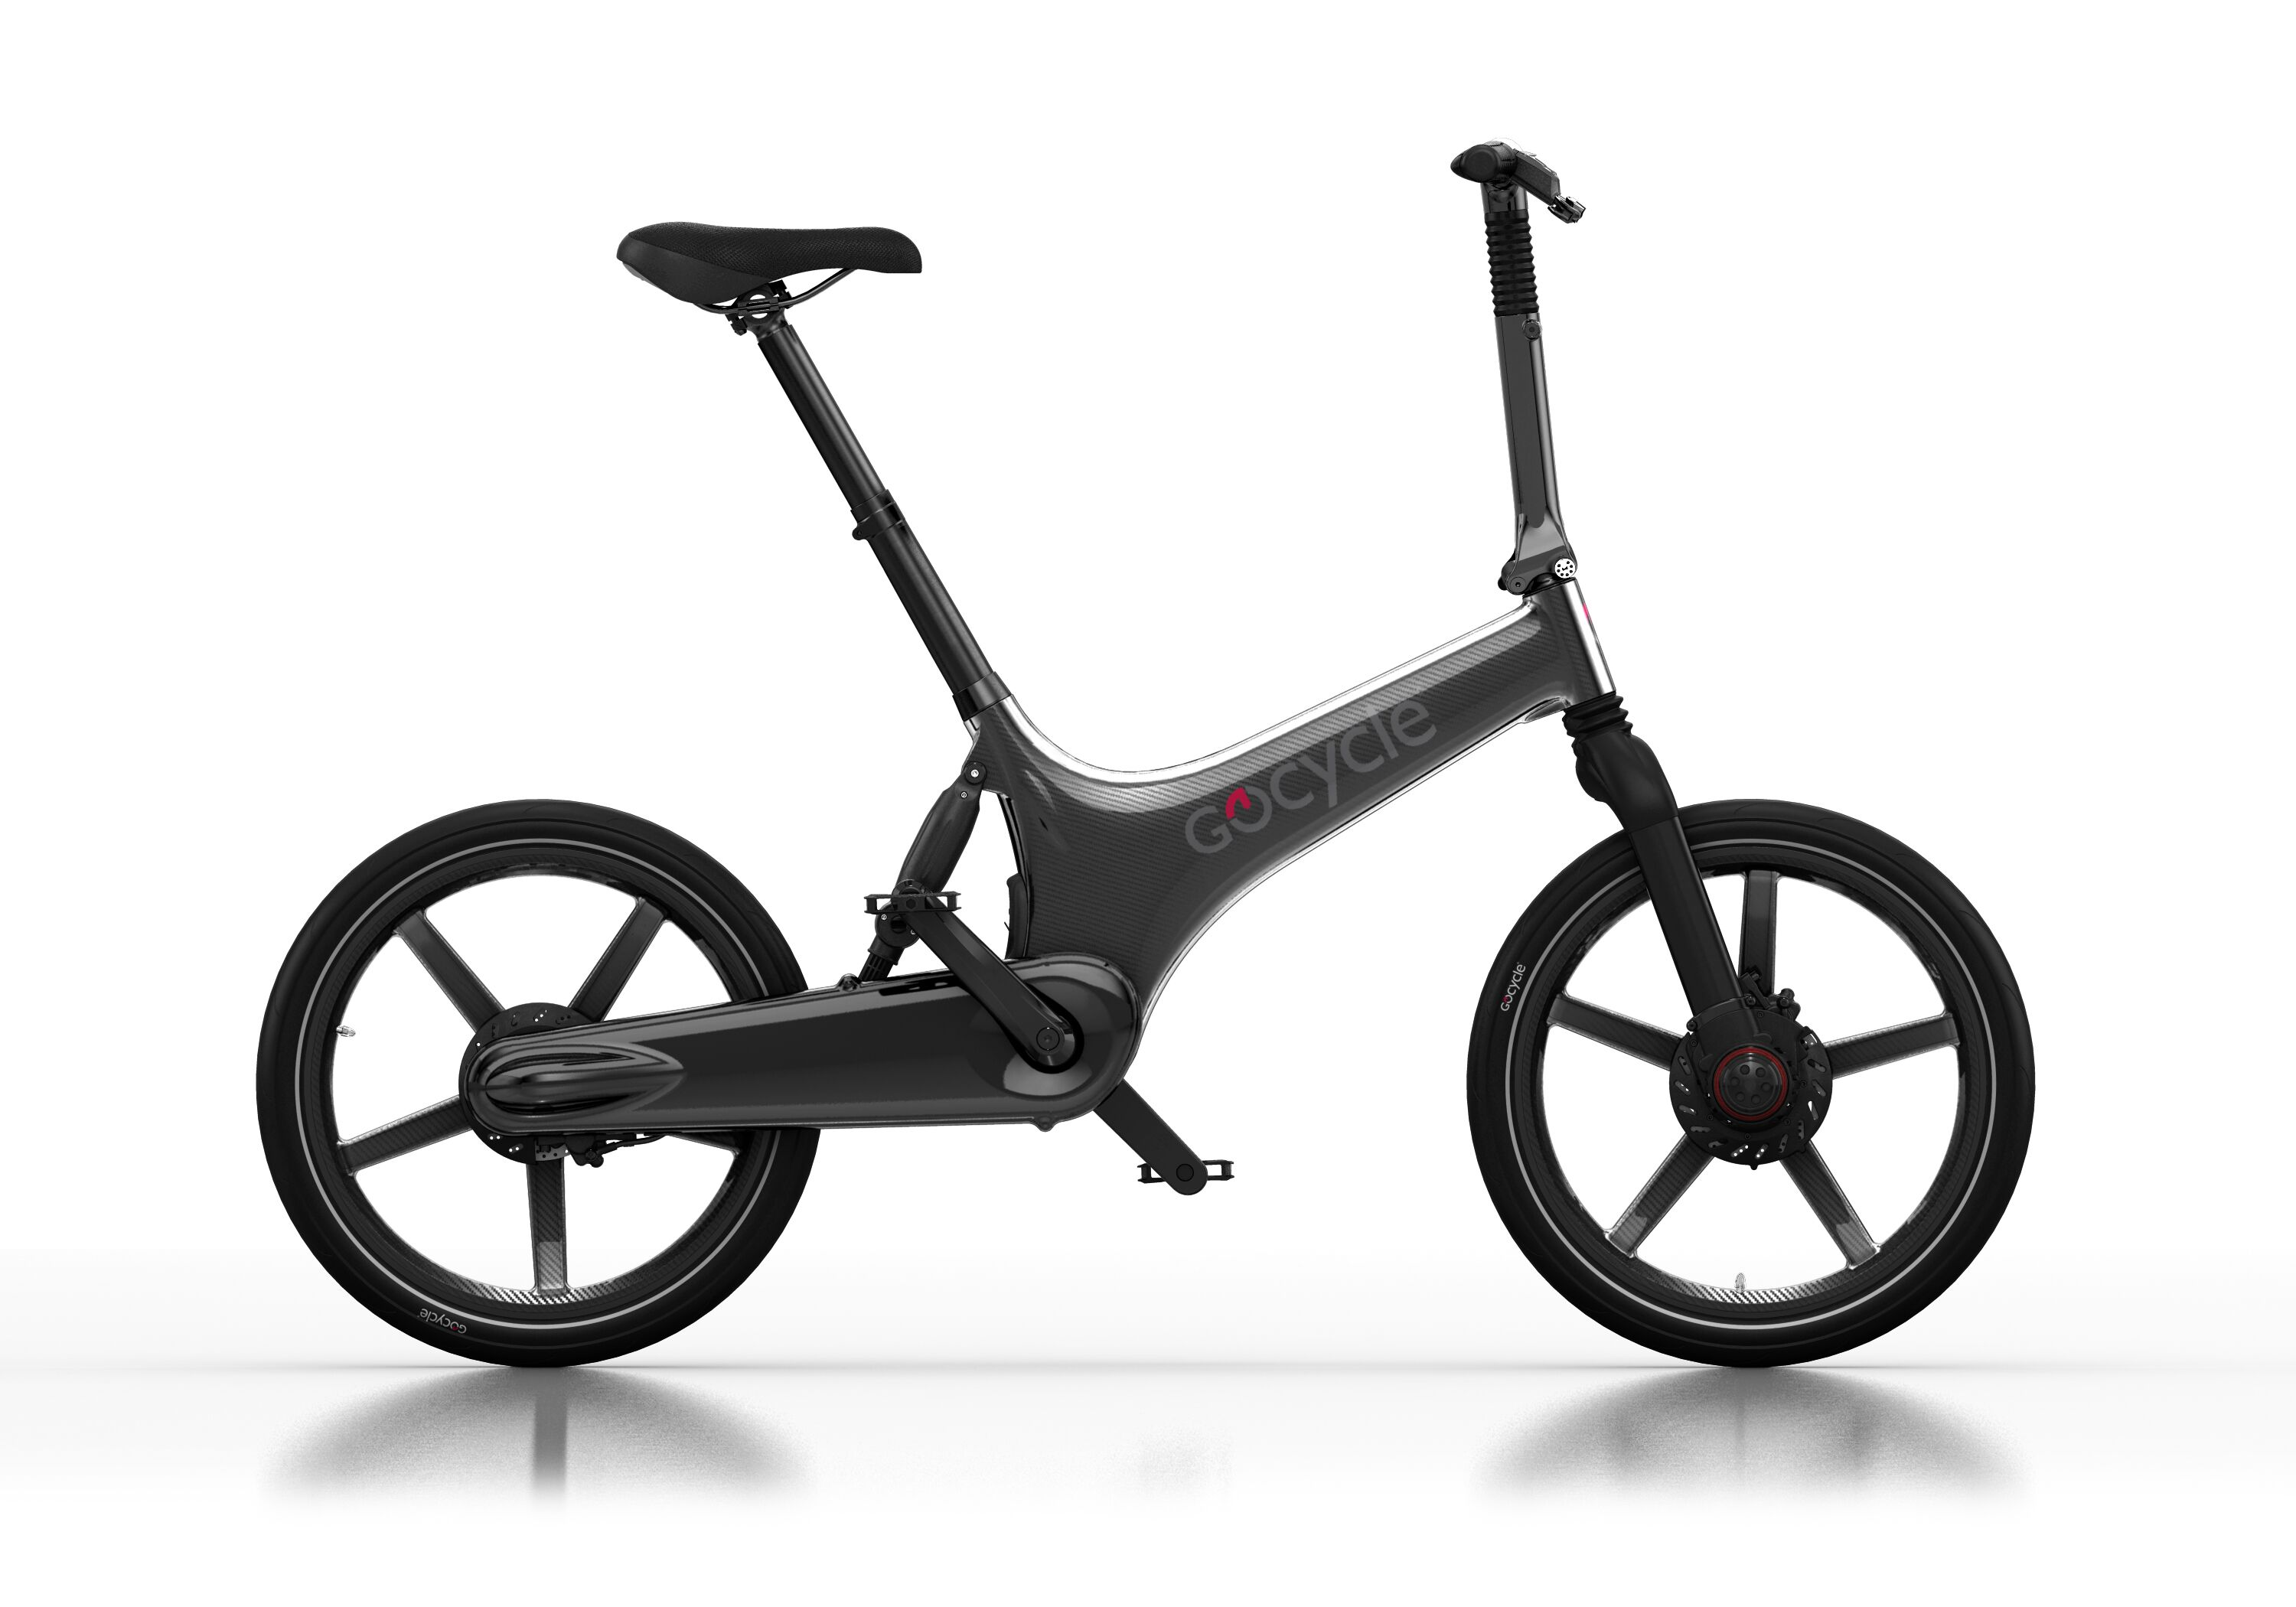 Gocycle G£ Carbon